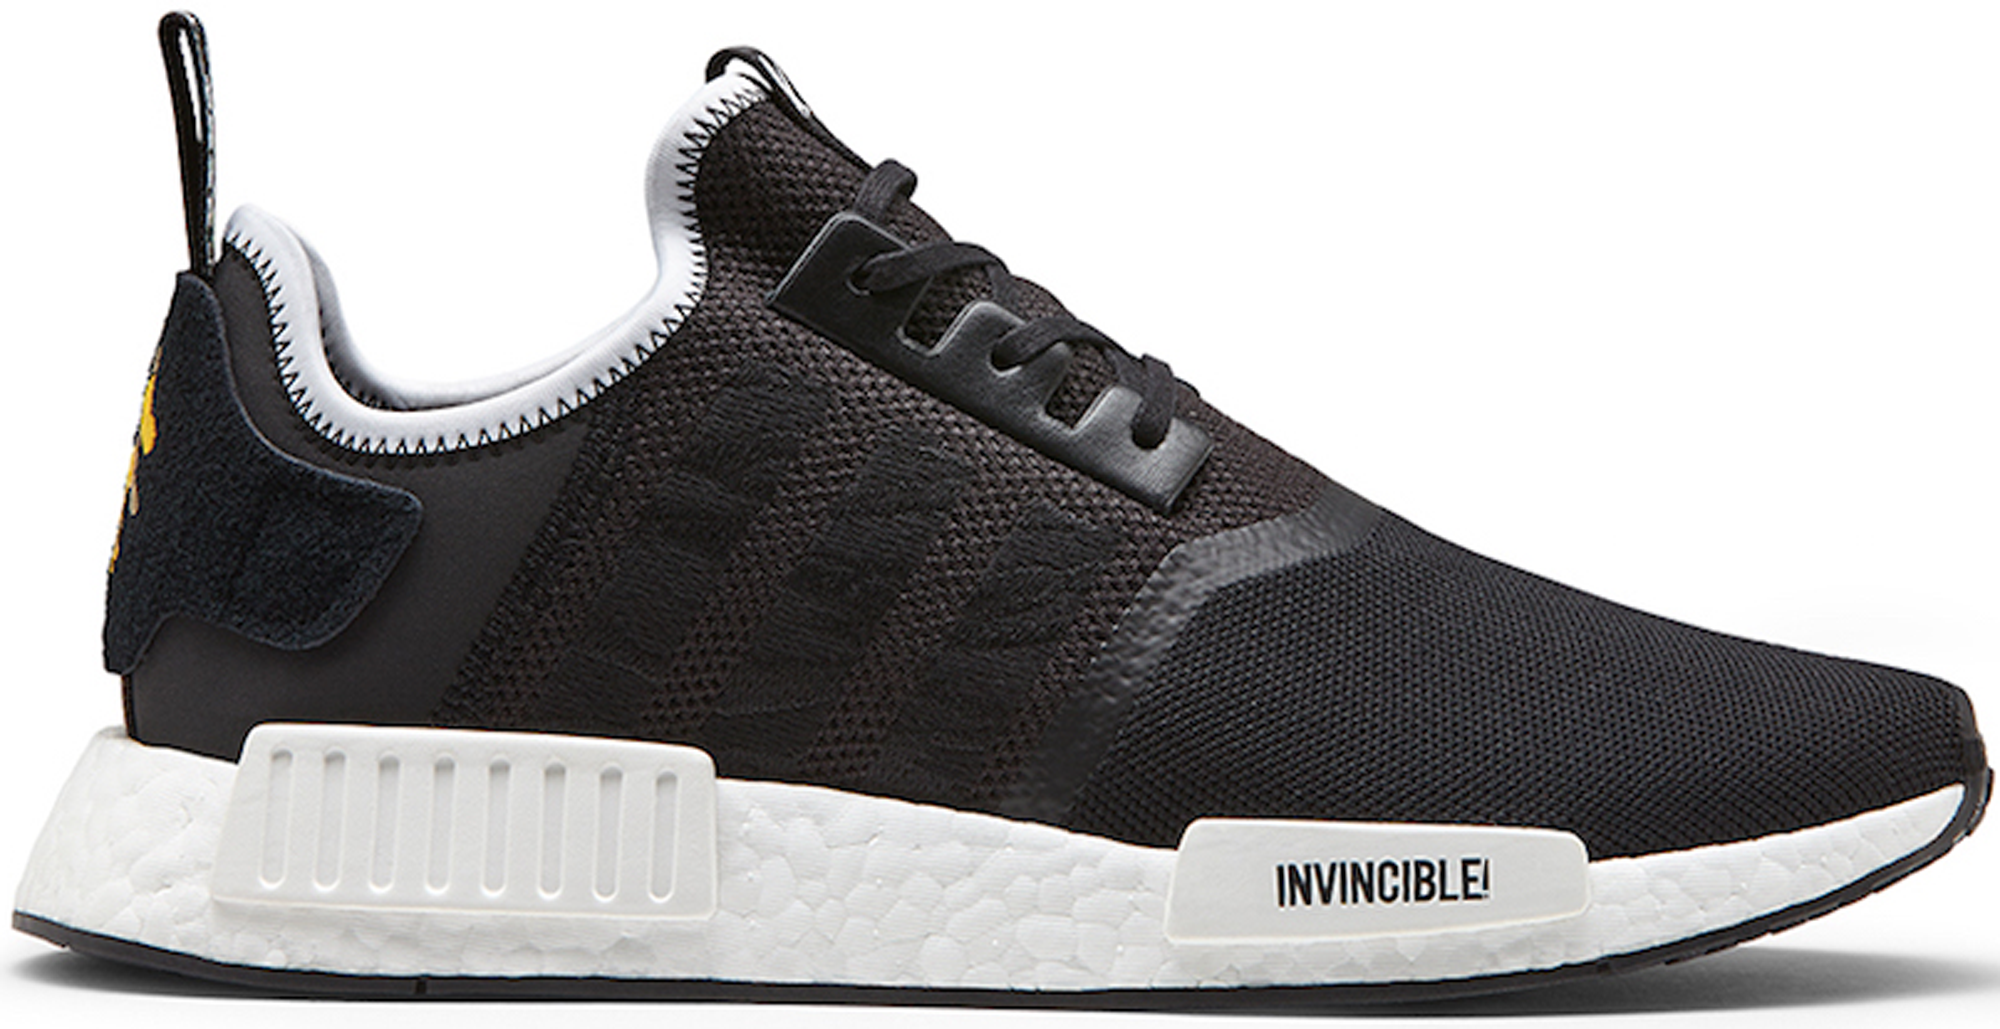 aac8603d Neighborhood x Invincible x adidas NMD R1 Black - StockX News